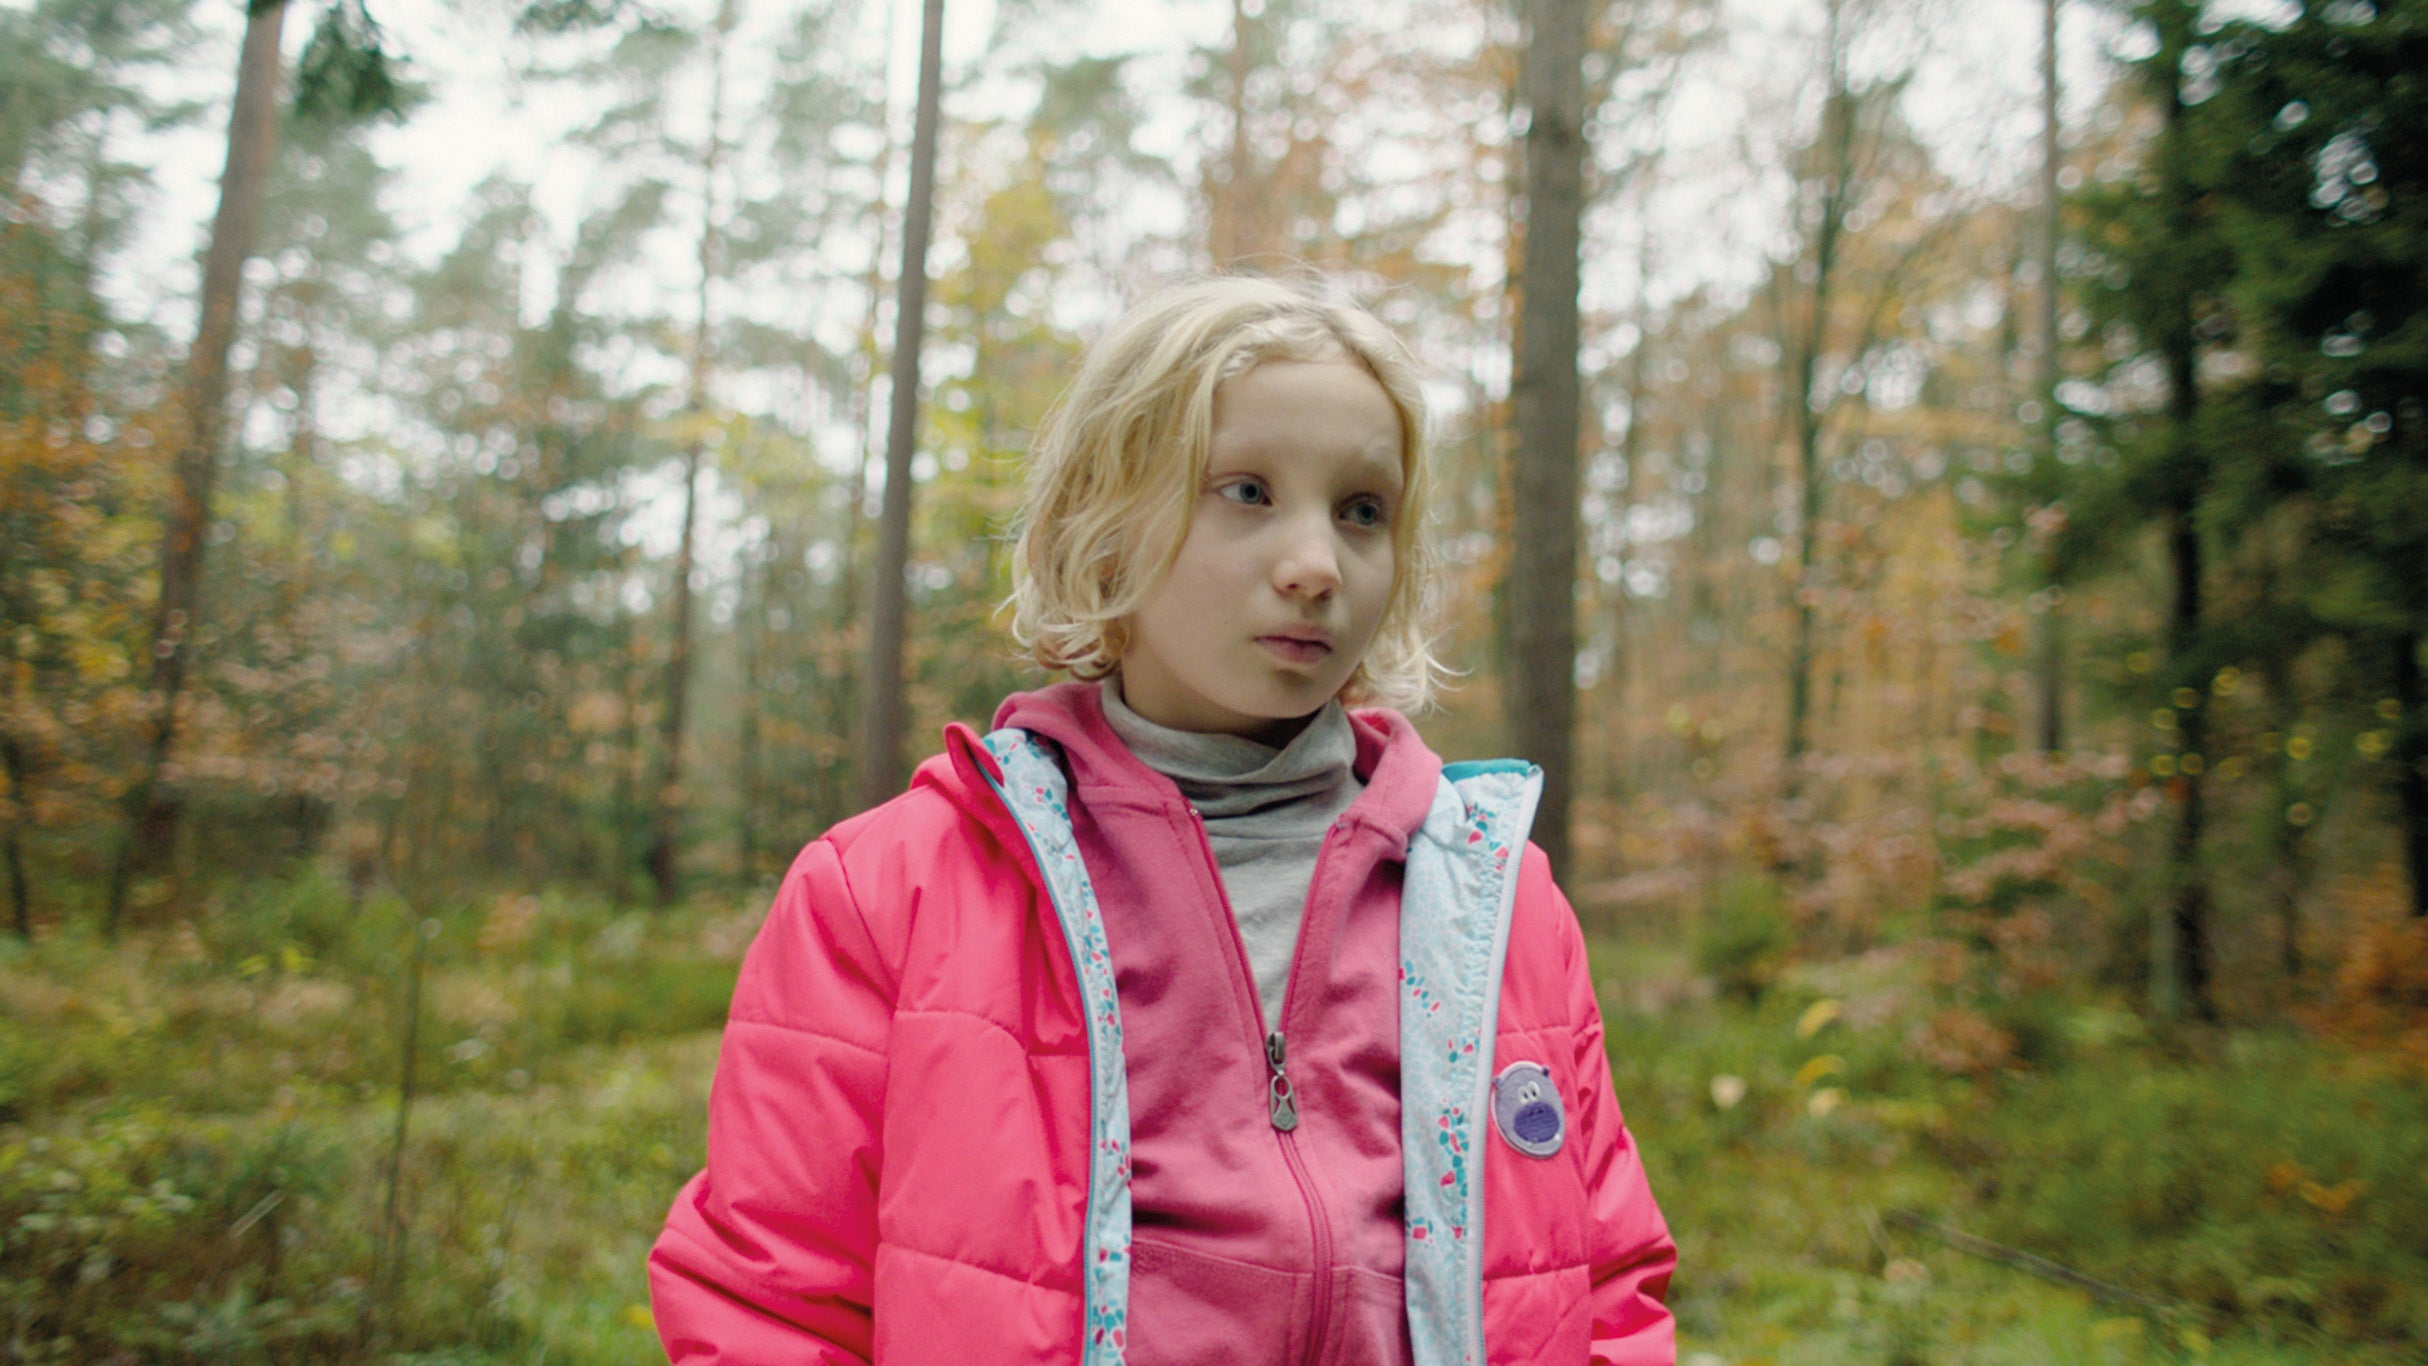 Nora Fingscheidt's System Crasher: an absorbing, frenetic piece of film-making